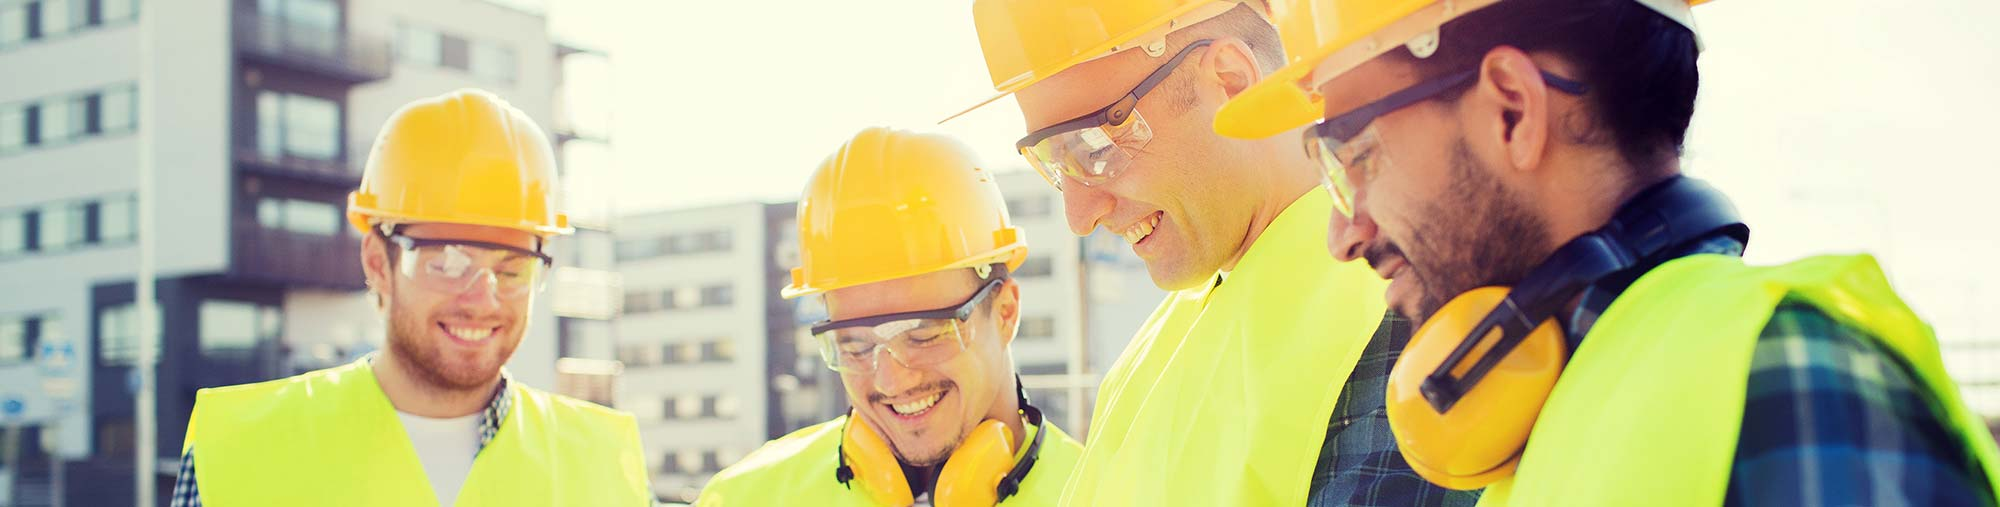 Workers in safety gear smiling